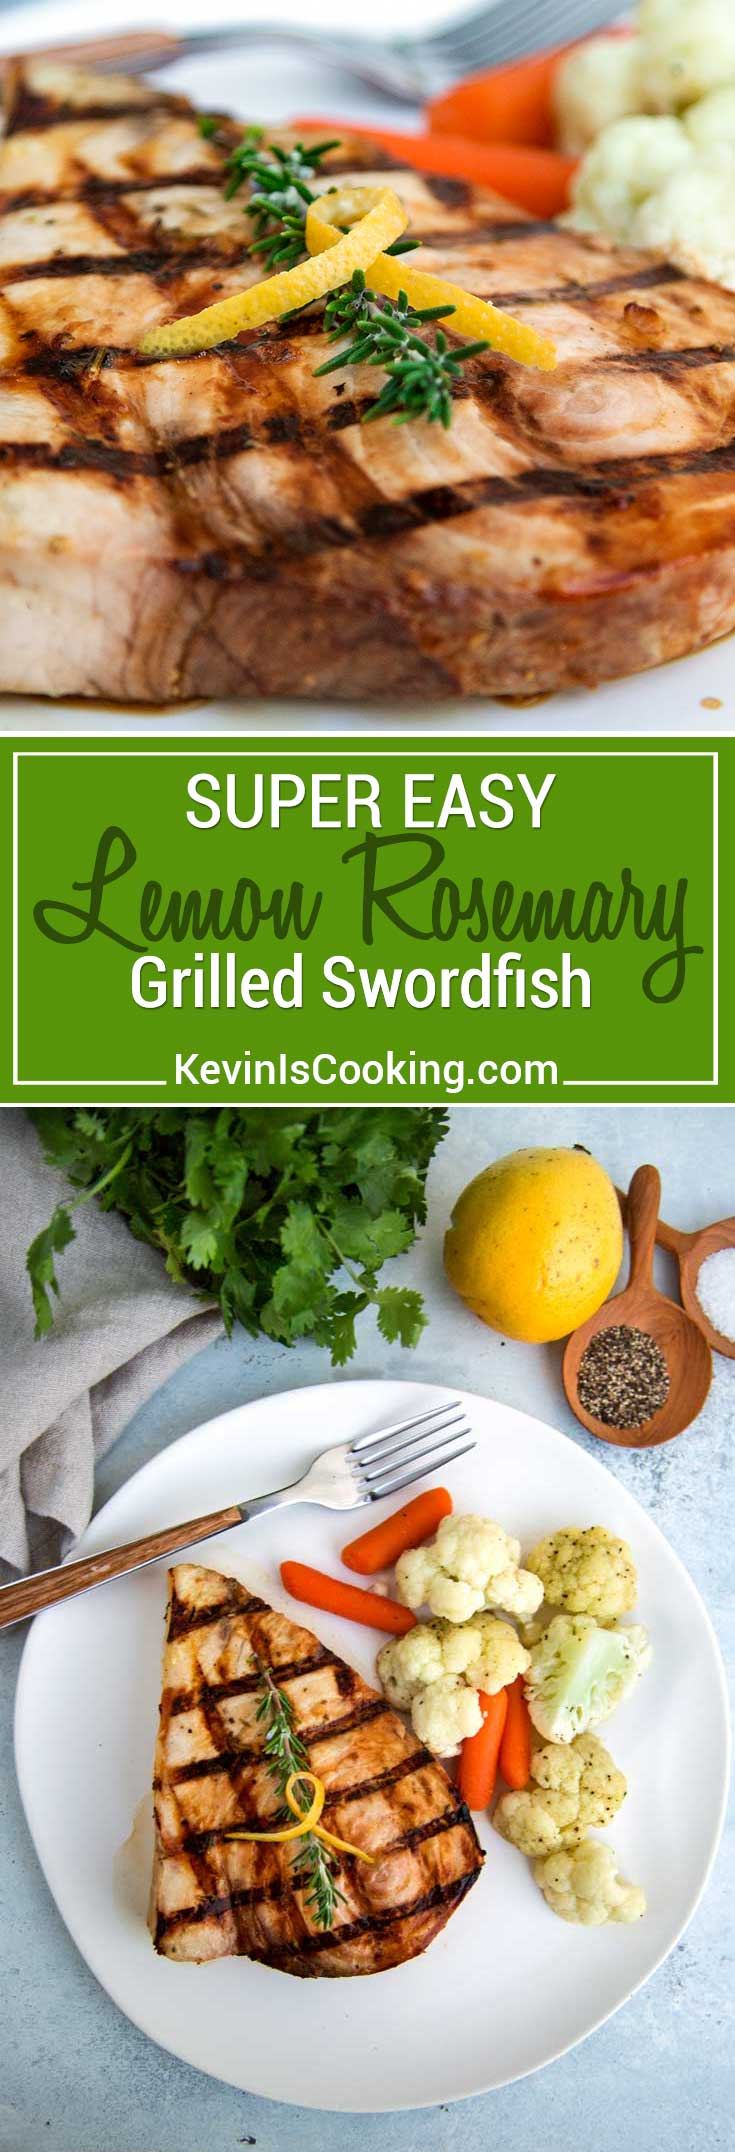 Grilled Swordfish with Chopped Greek Salad Recipe  MyRecipes